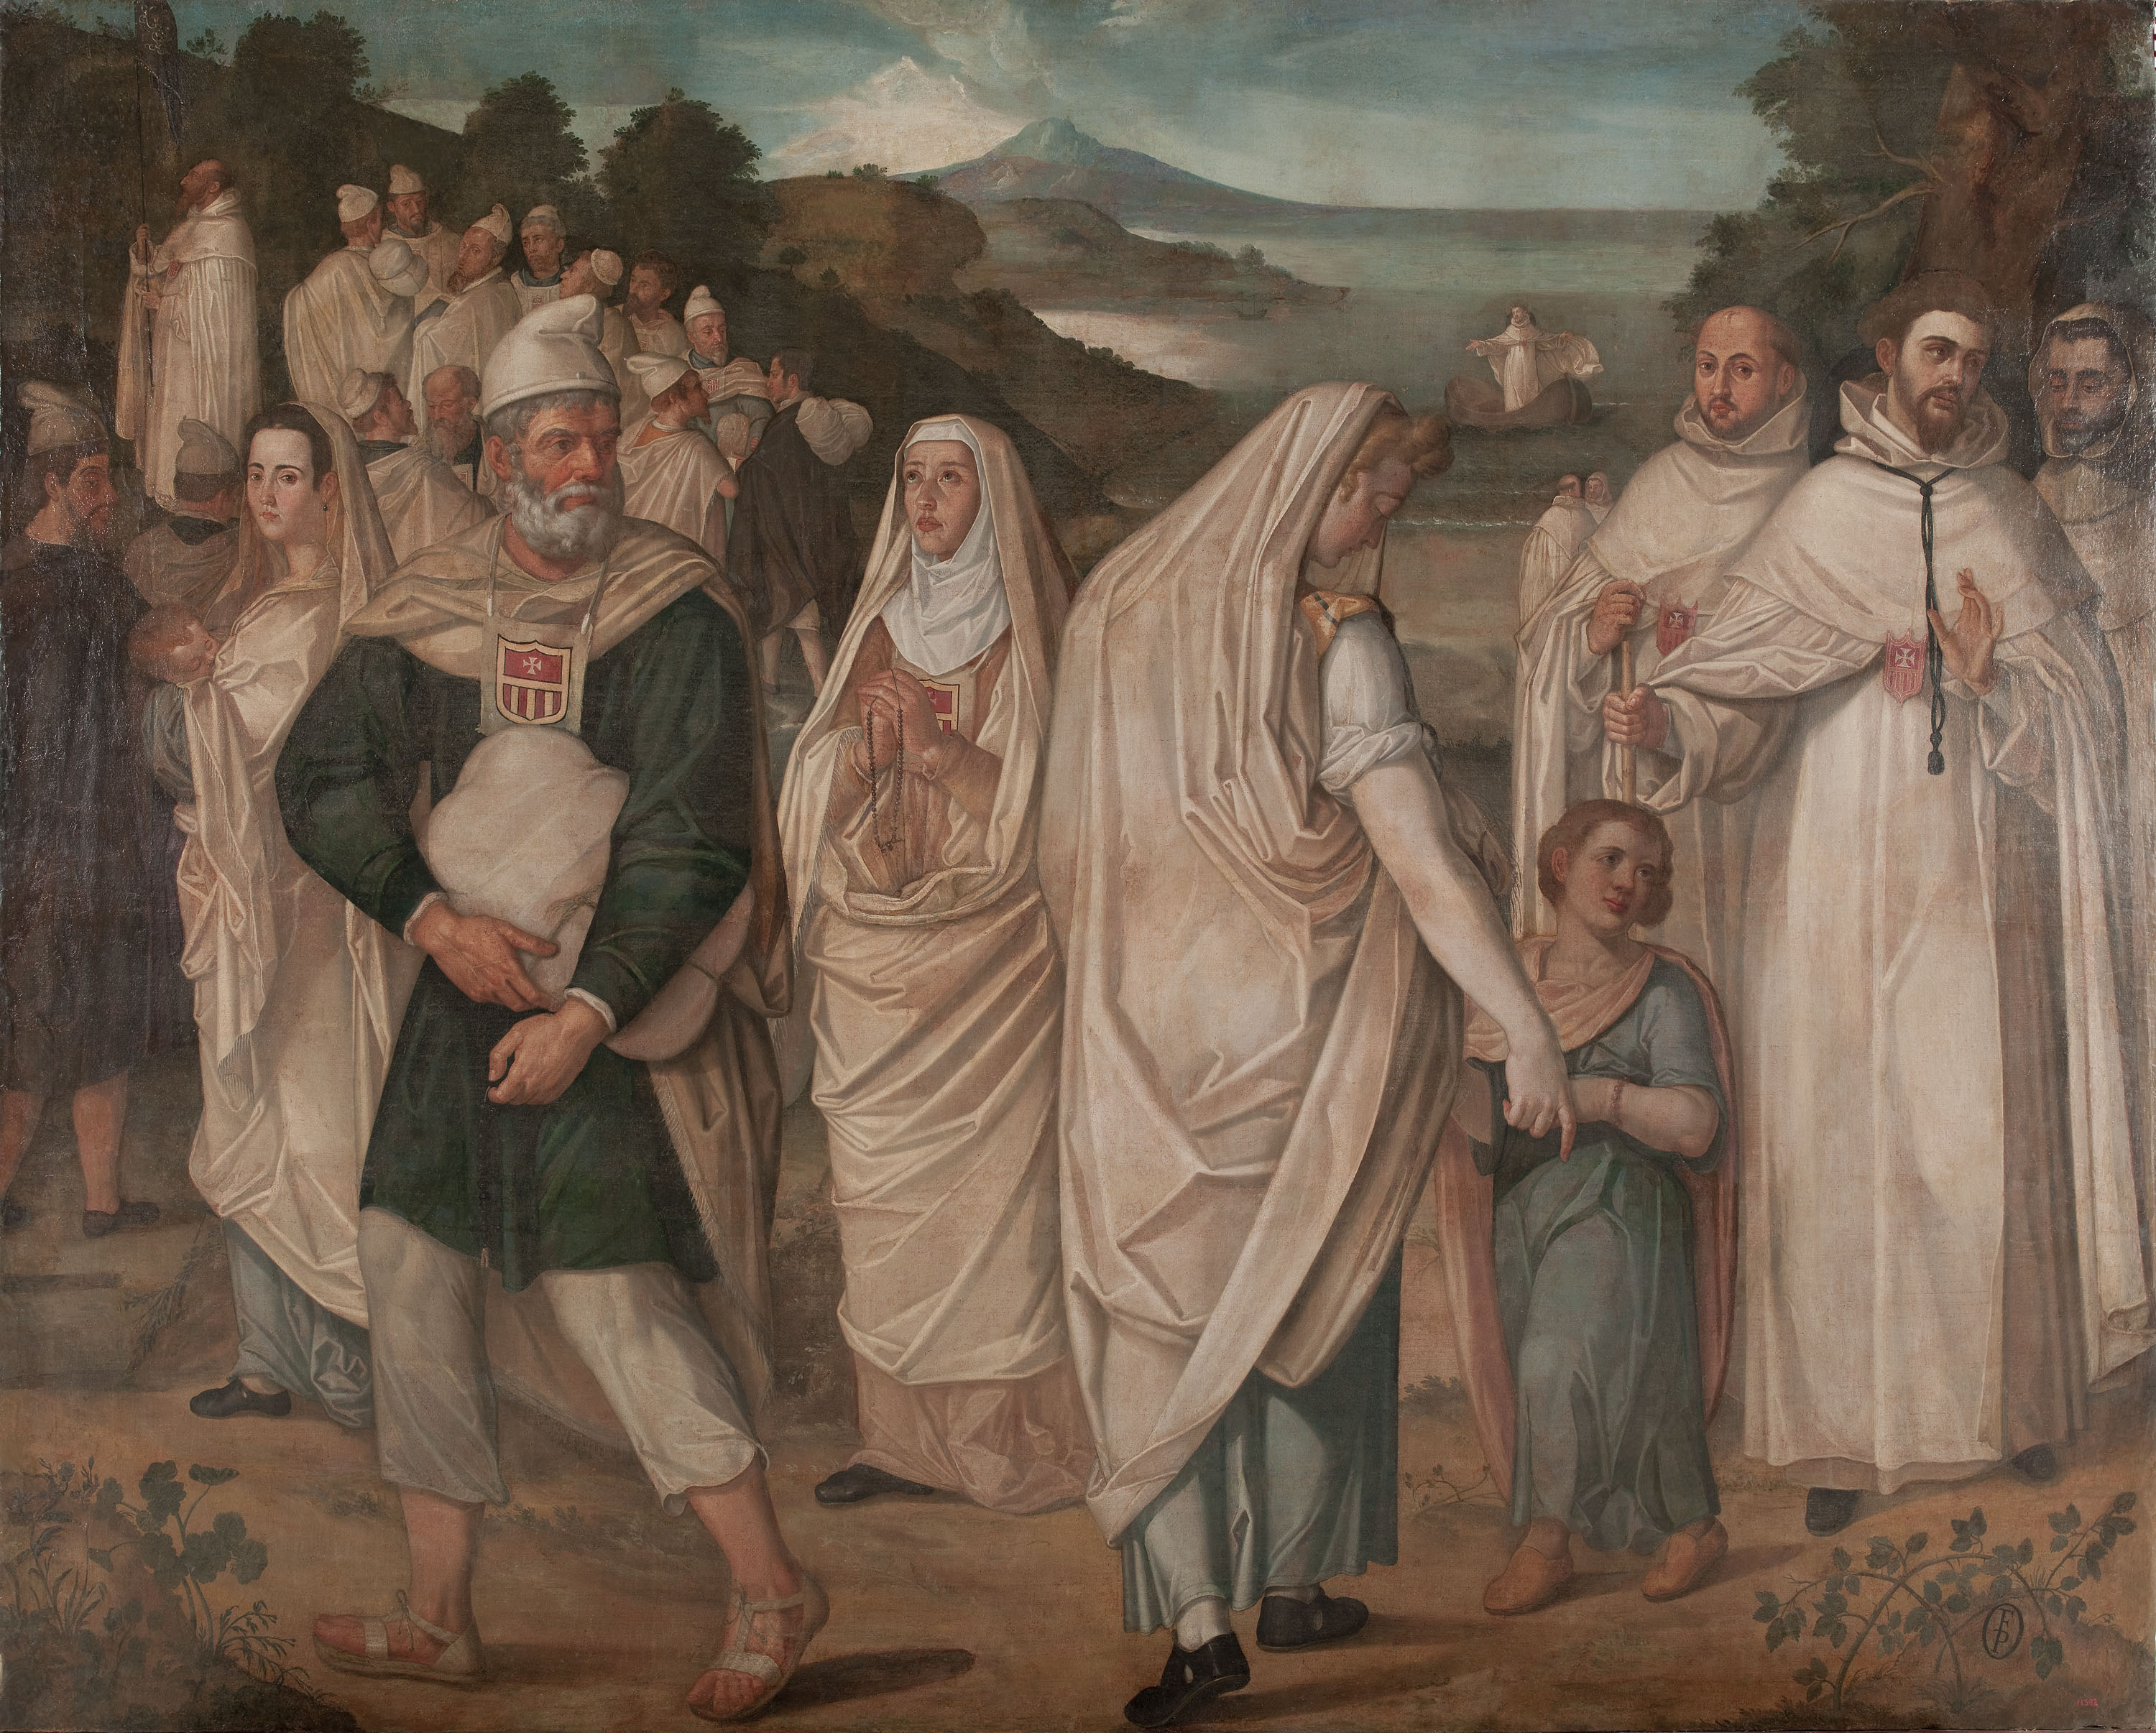 Francisco Pacheco - Disembarkation of Captives Ransomed by Saint Peter Nolasco - 1602